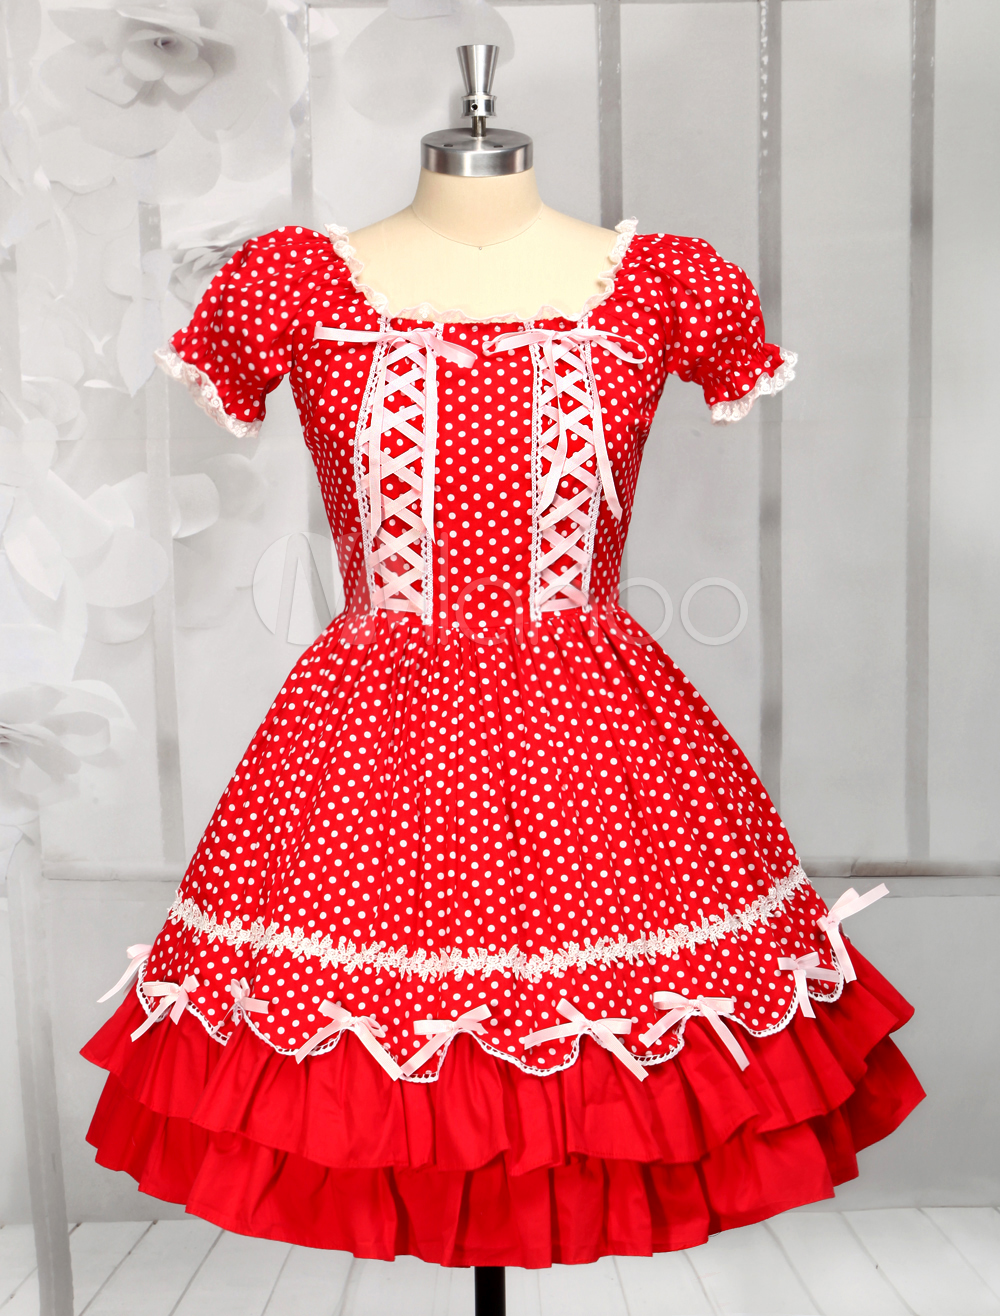 Buy Red Cotton Short Sleeves Square Neck Drawstring Lolita Dress for $89.99 in Milanoo store